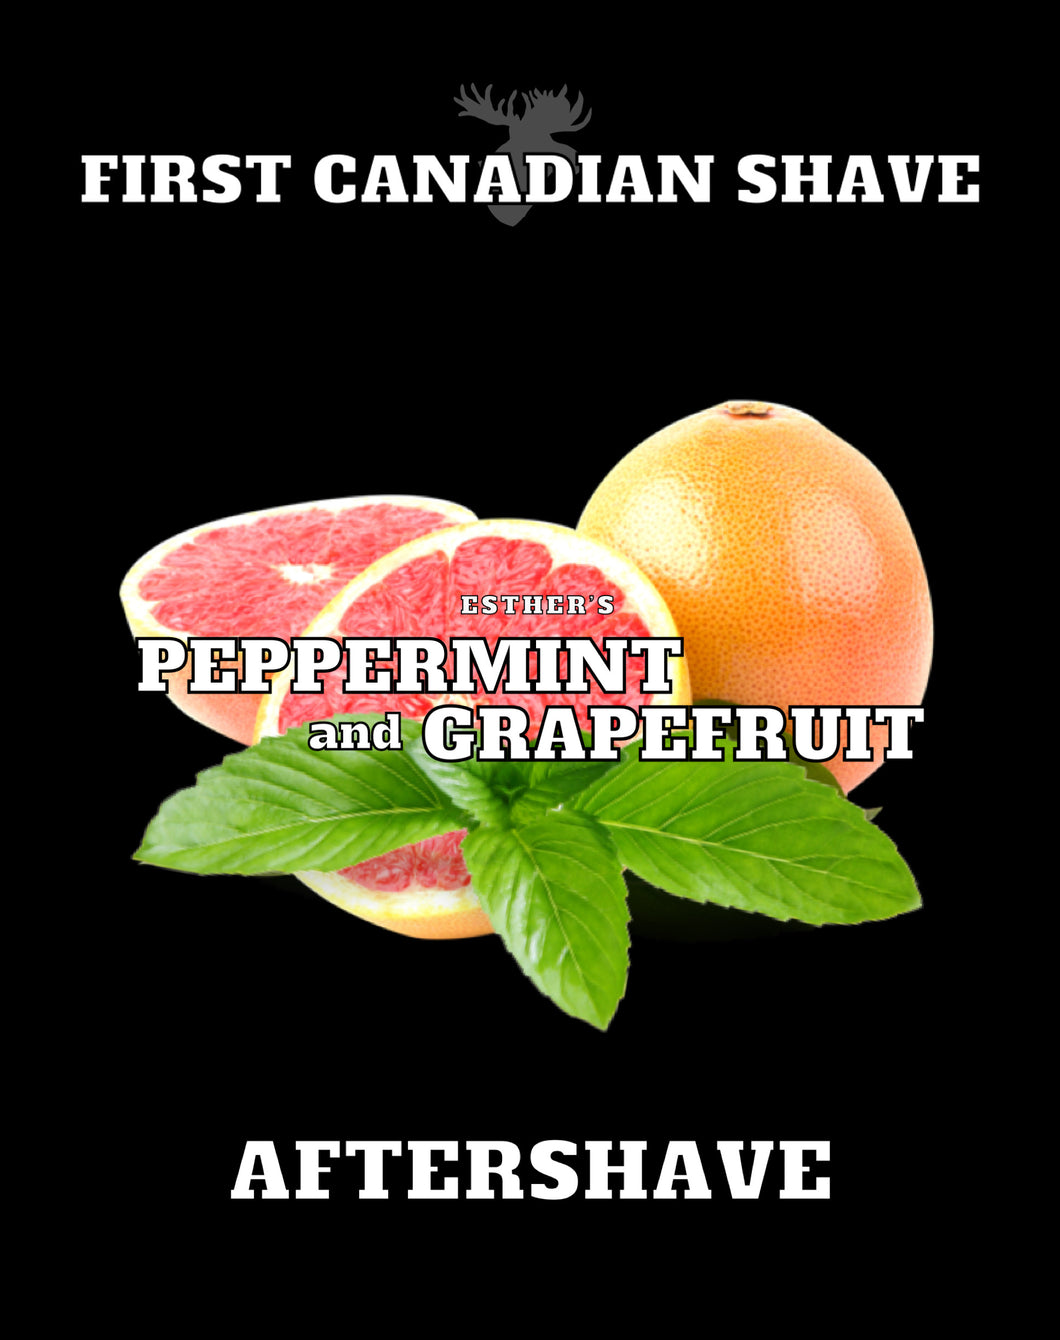 Esther's Peppermint and Grapefruit Aftershave